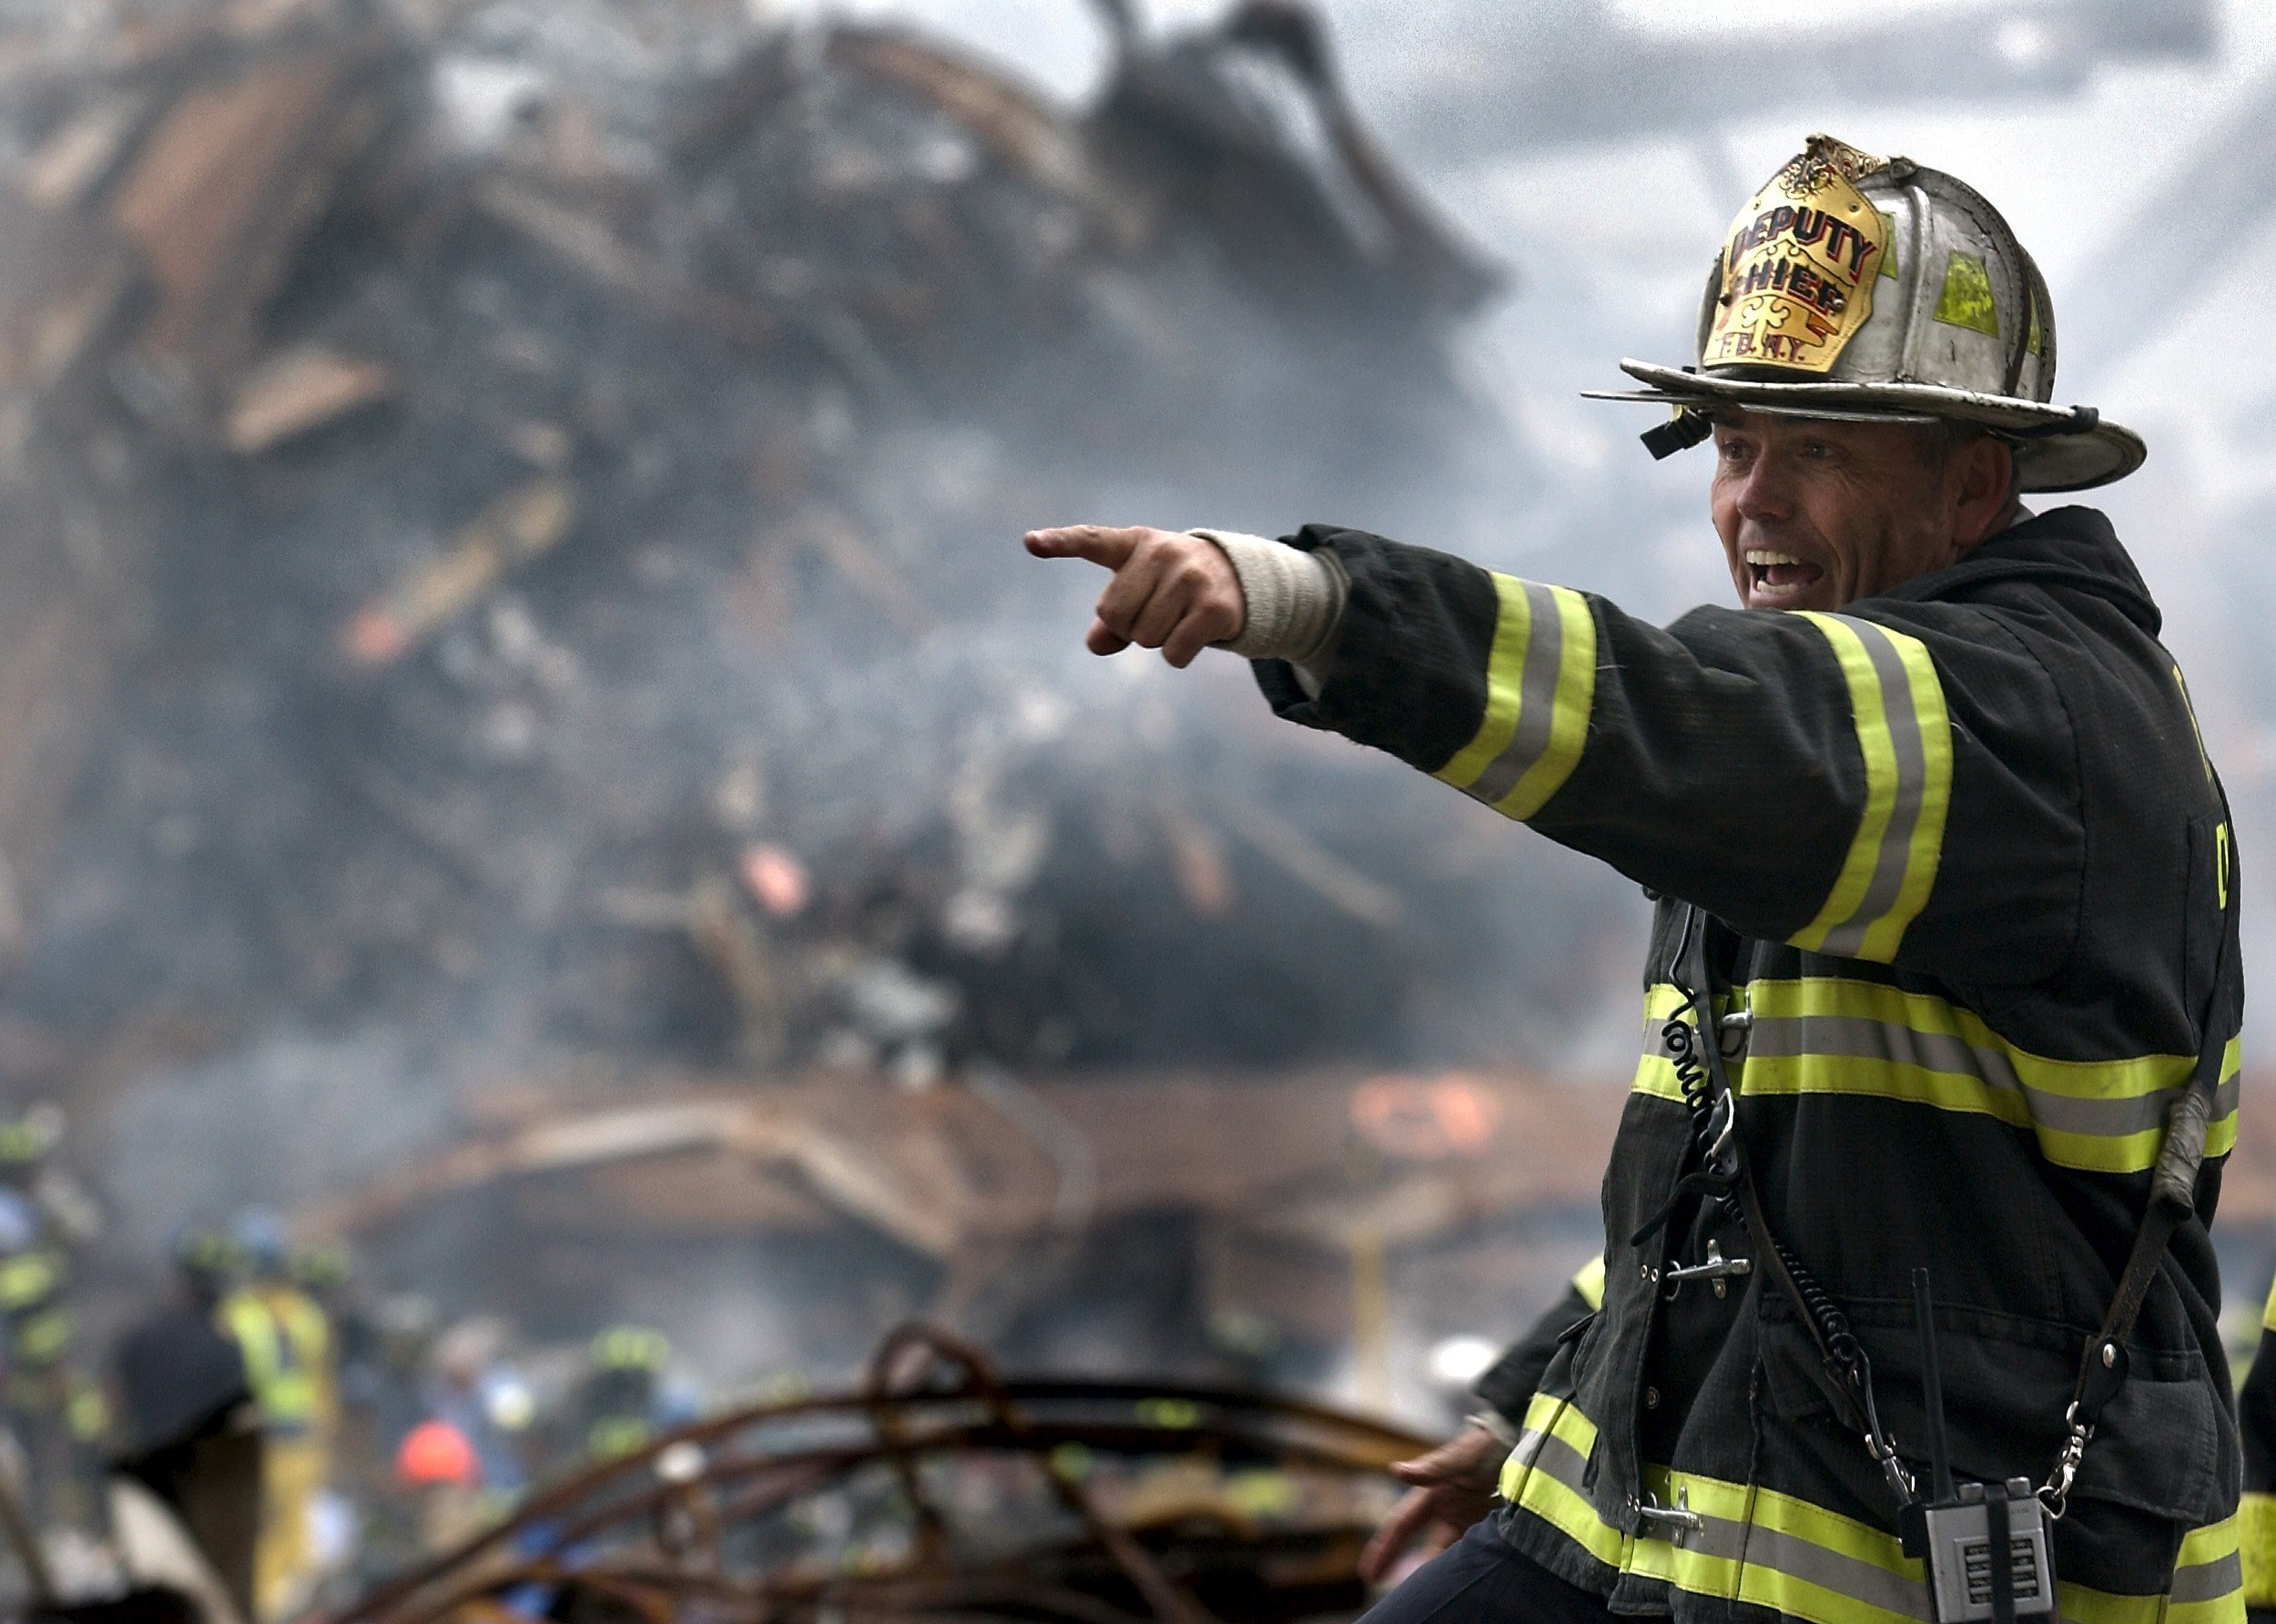 Res: 2500x1784, free high resolution wallpaper firefighter